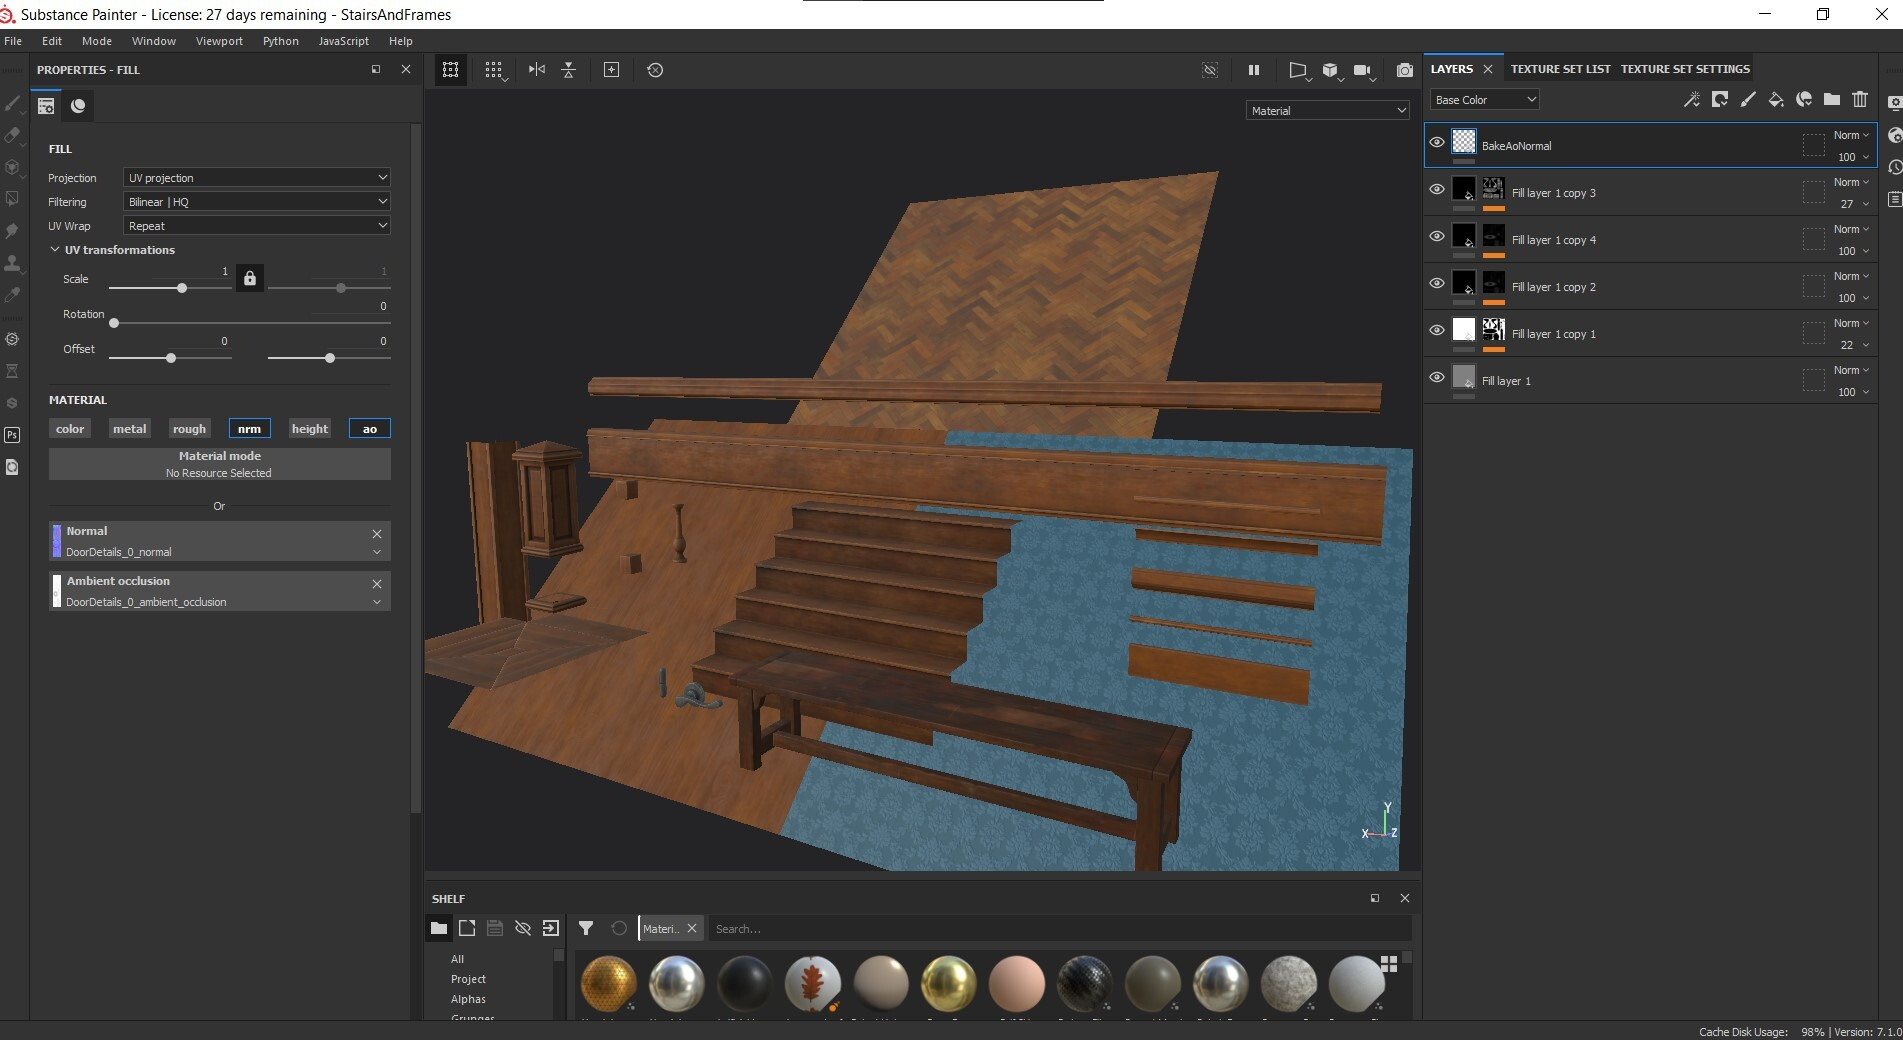 All textures are created on Painter including the seamless one